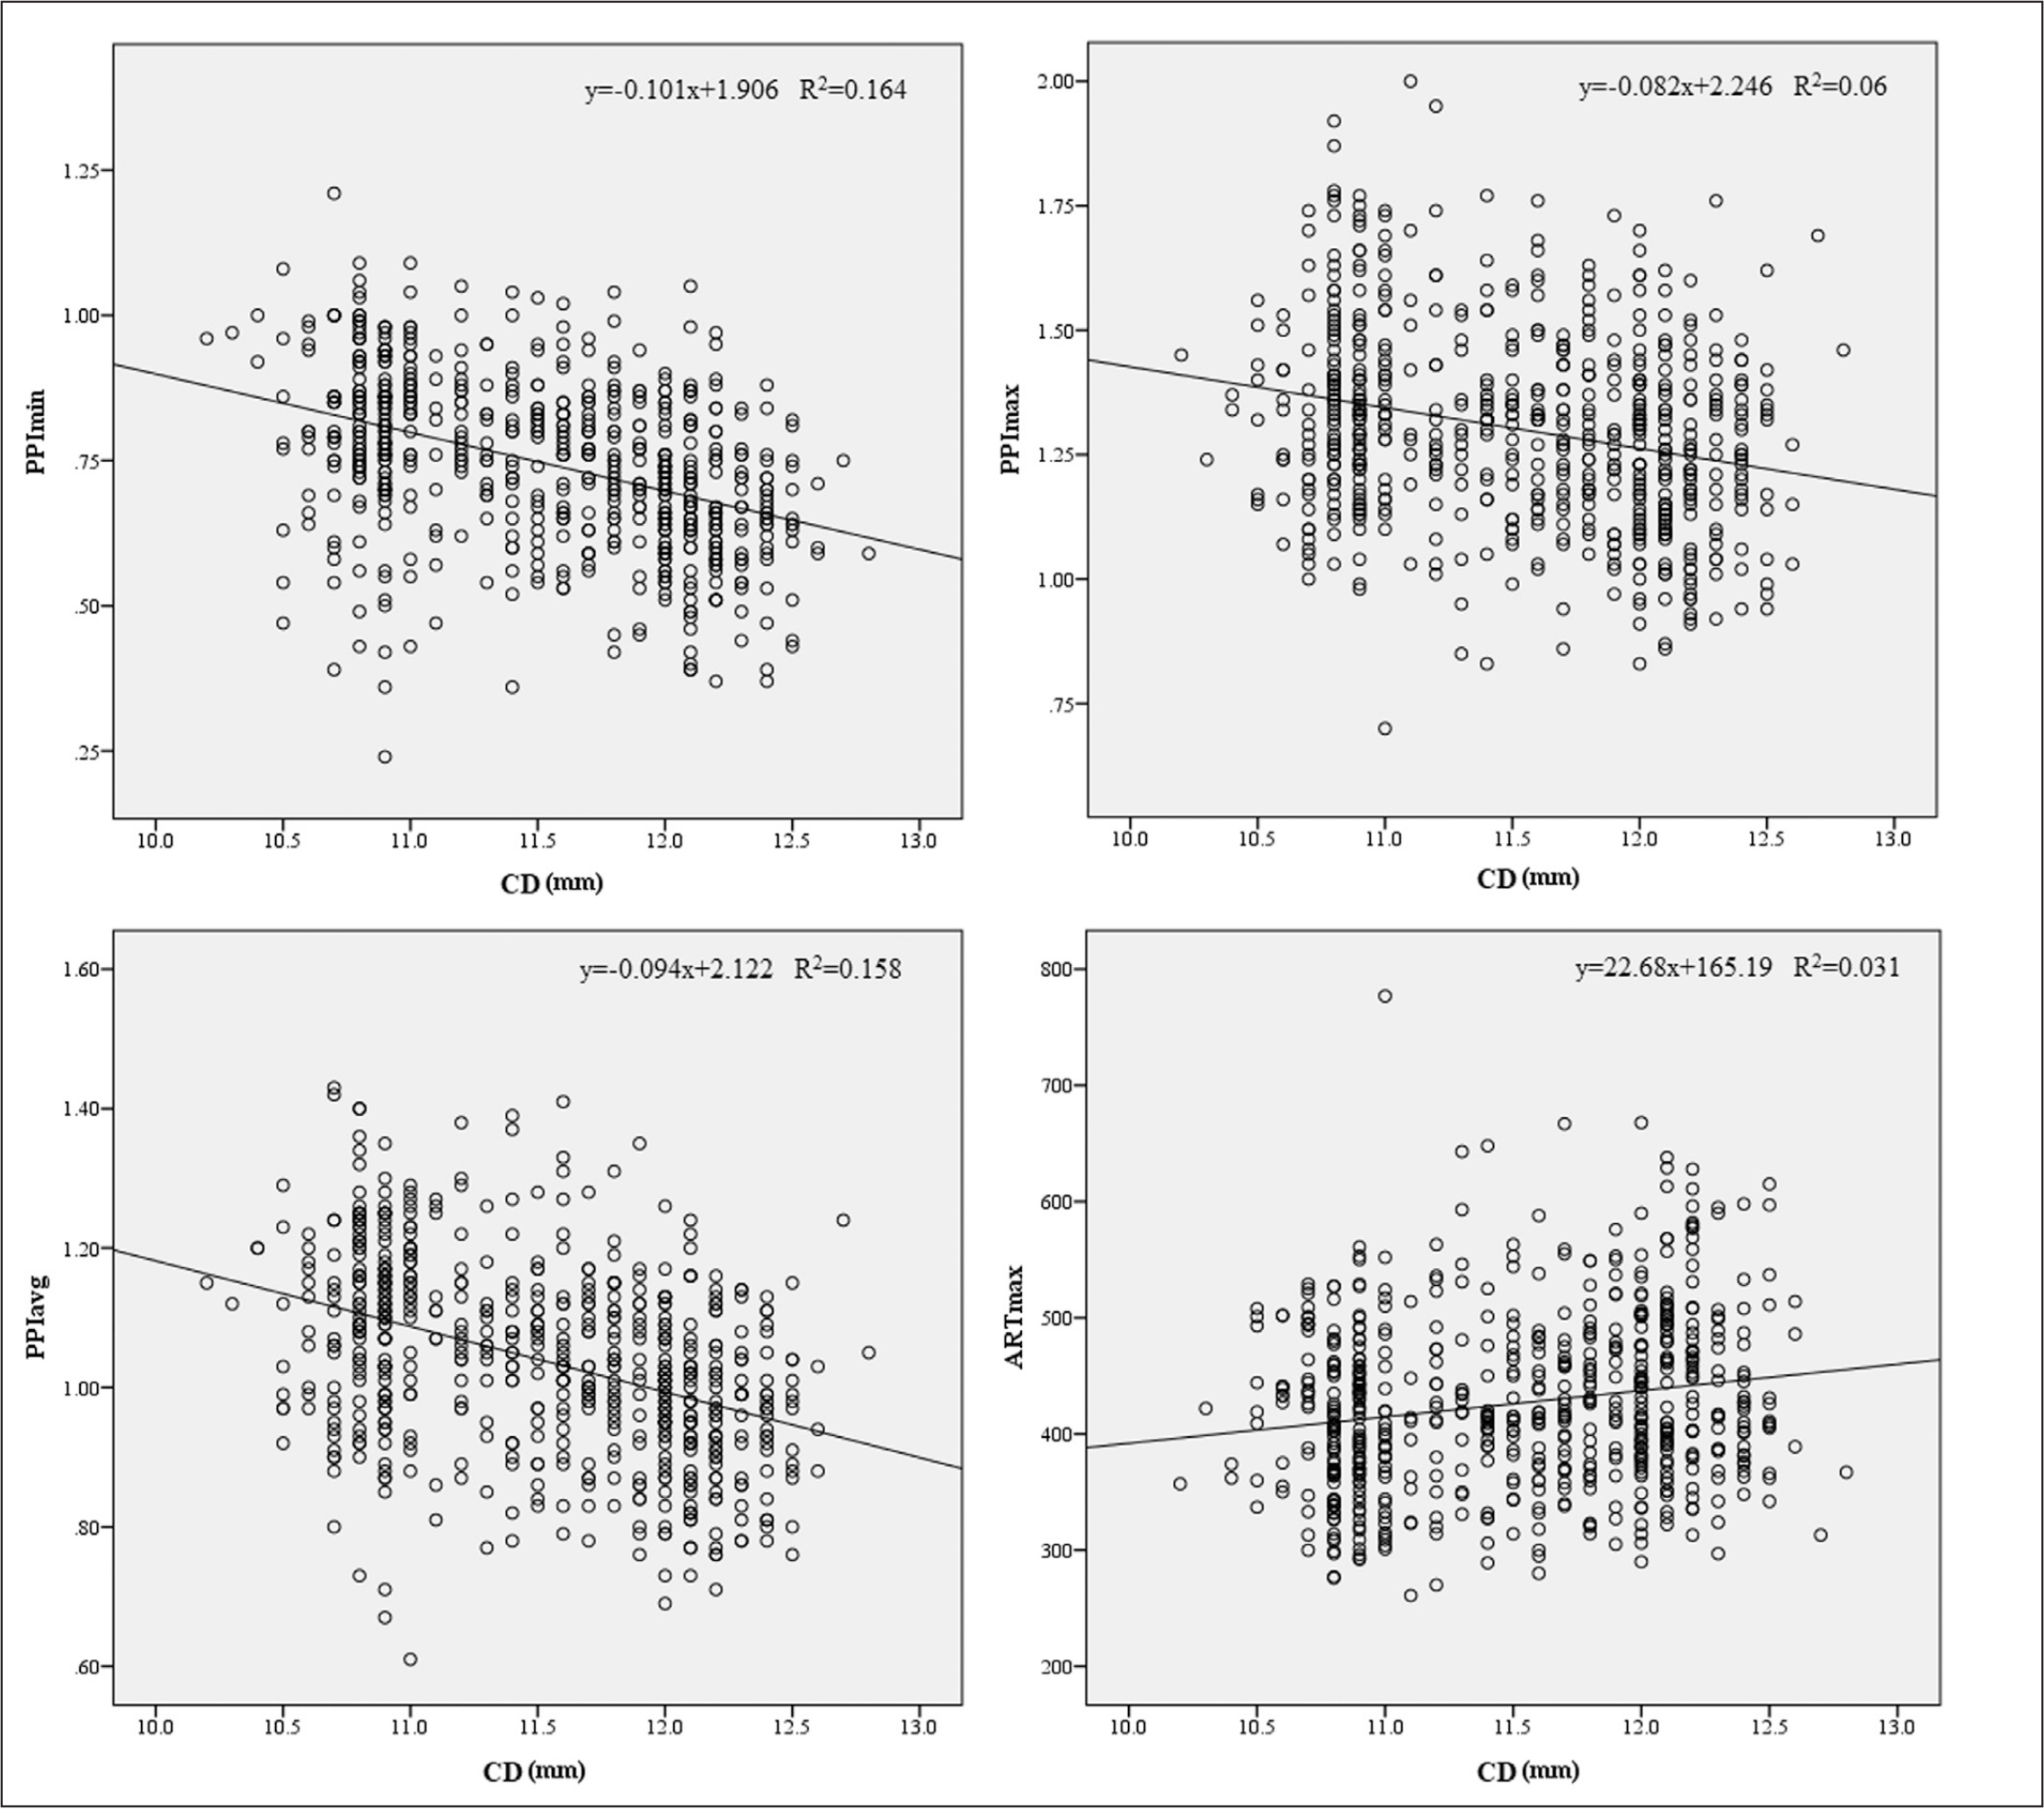 Scatter plots of the distributions of pachymetric progression indices minimum (PPImin), maximum (PPImax), and average (PPIavg), and maximum Ambrósio's relational thickness (ARTmax) with respect to corneal diameter (CD).